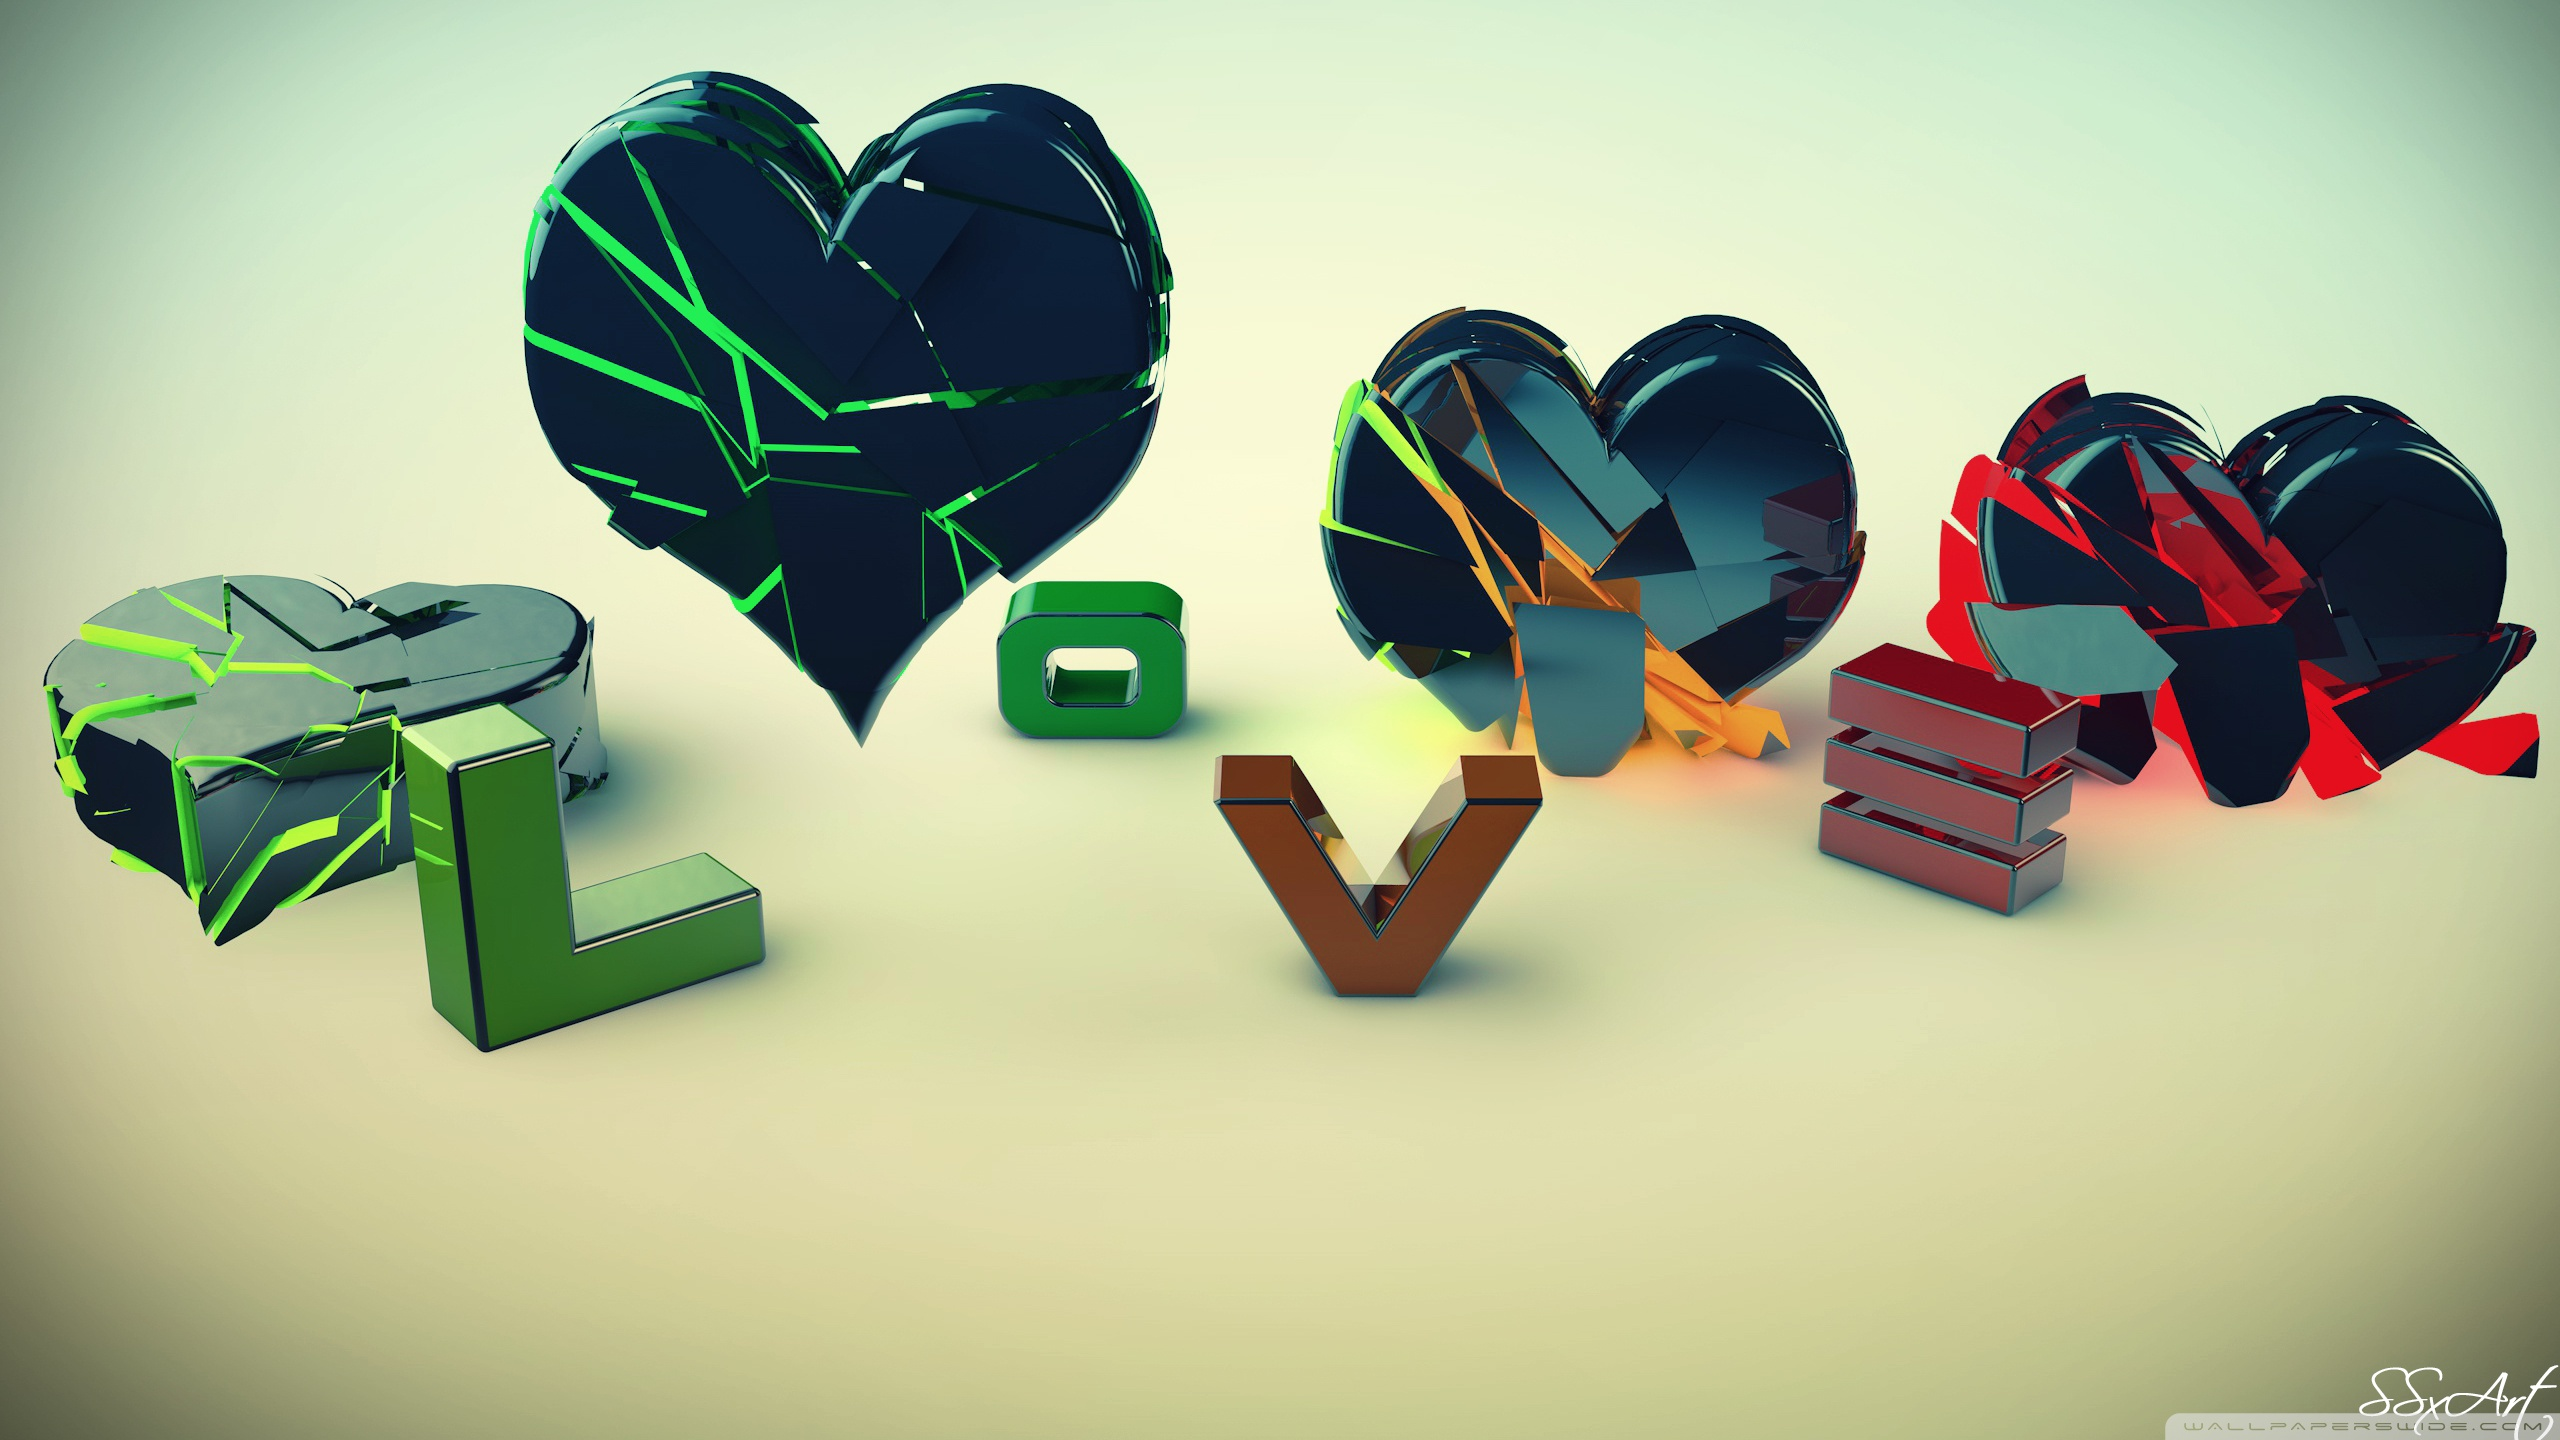 50 Love Wallpaper Hd Full Size For Mobile And Laptop: Love Full HD Papel De Parede And Planos De Fundo